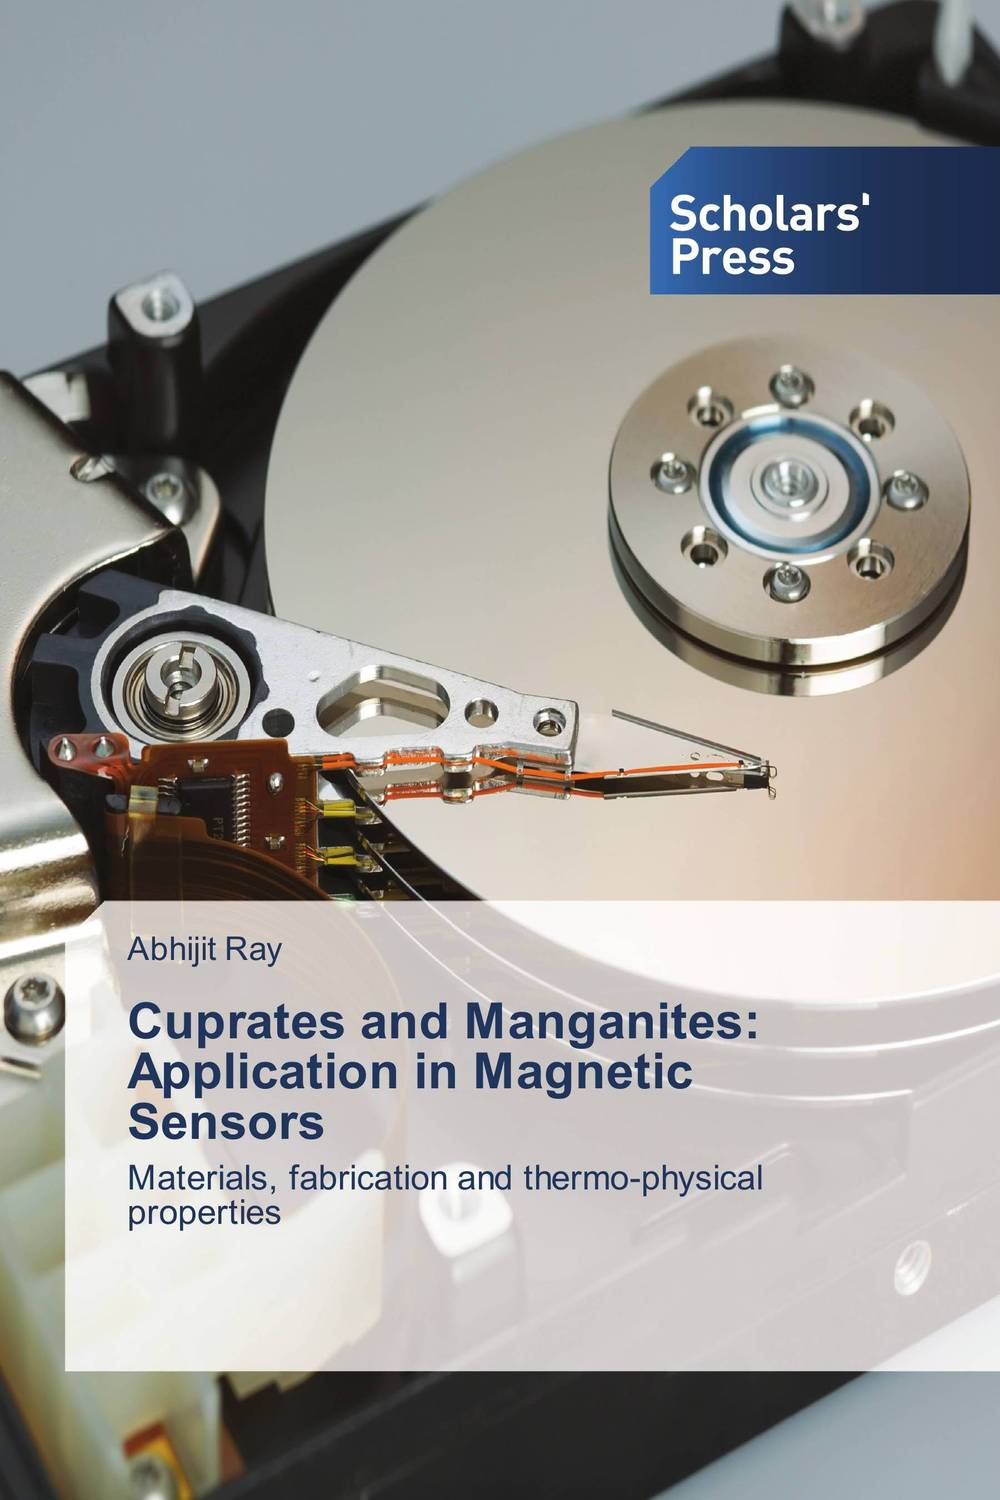 Cuprates and Manganites: Application in Magnetic Sensors parnas bibliotheca microbiologica brucella phages properties and application